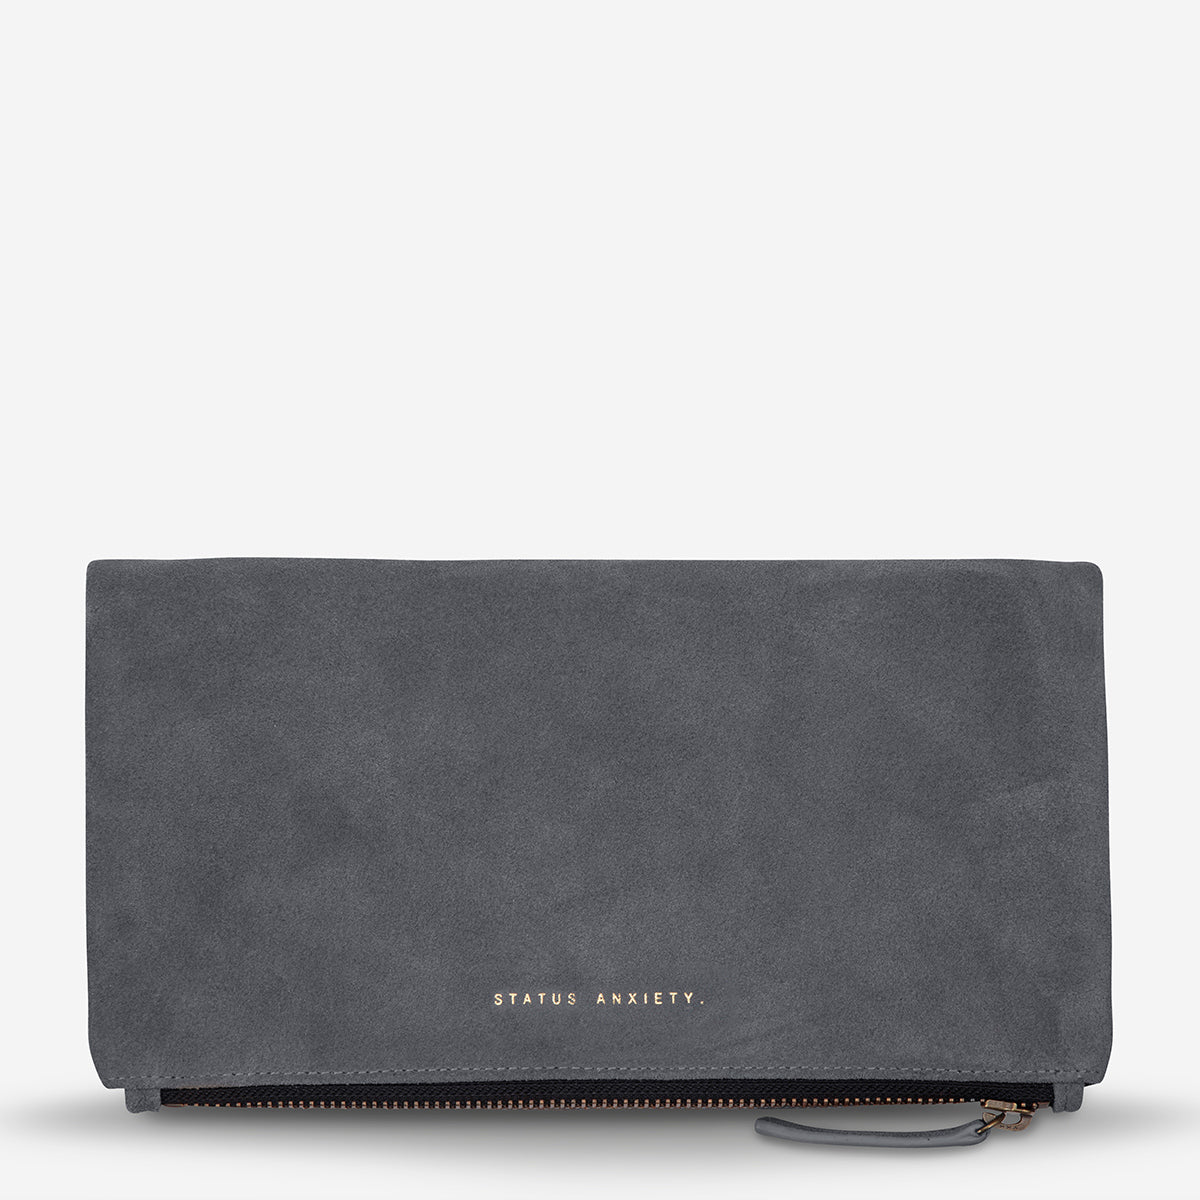 Status Anxiety Feel The Night Women's Leather Clutch Wallet Slate